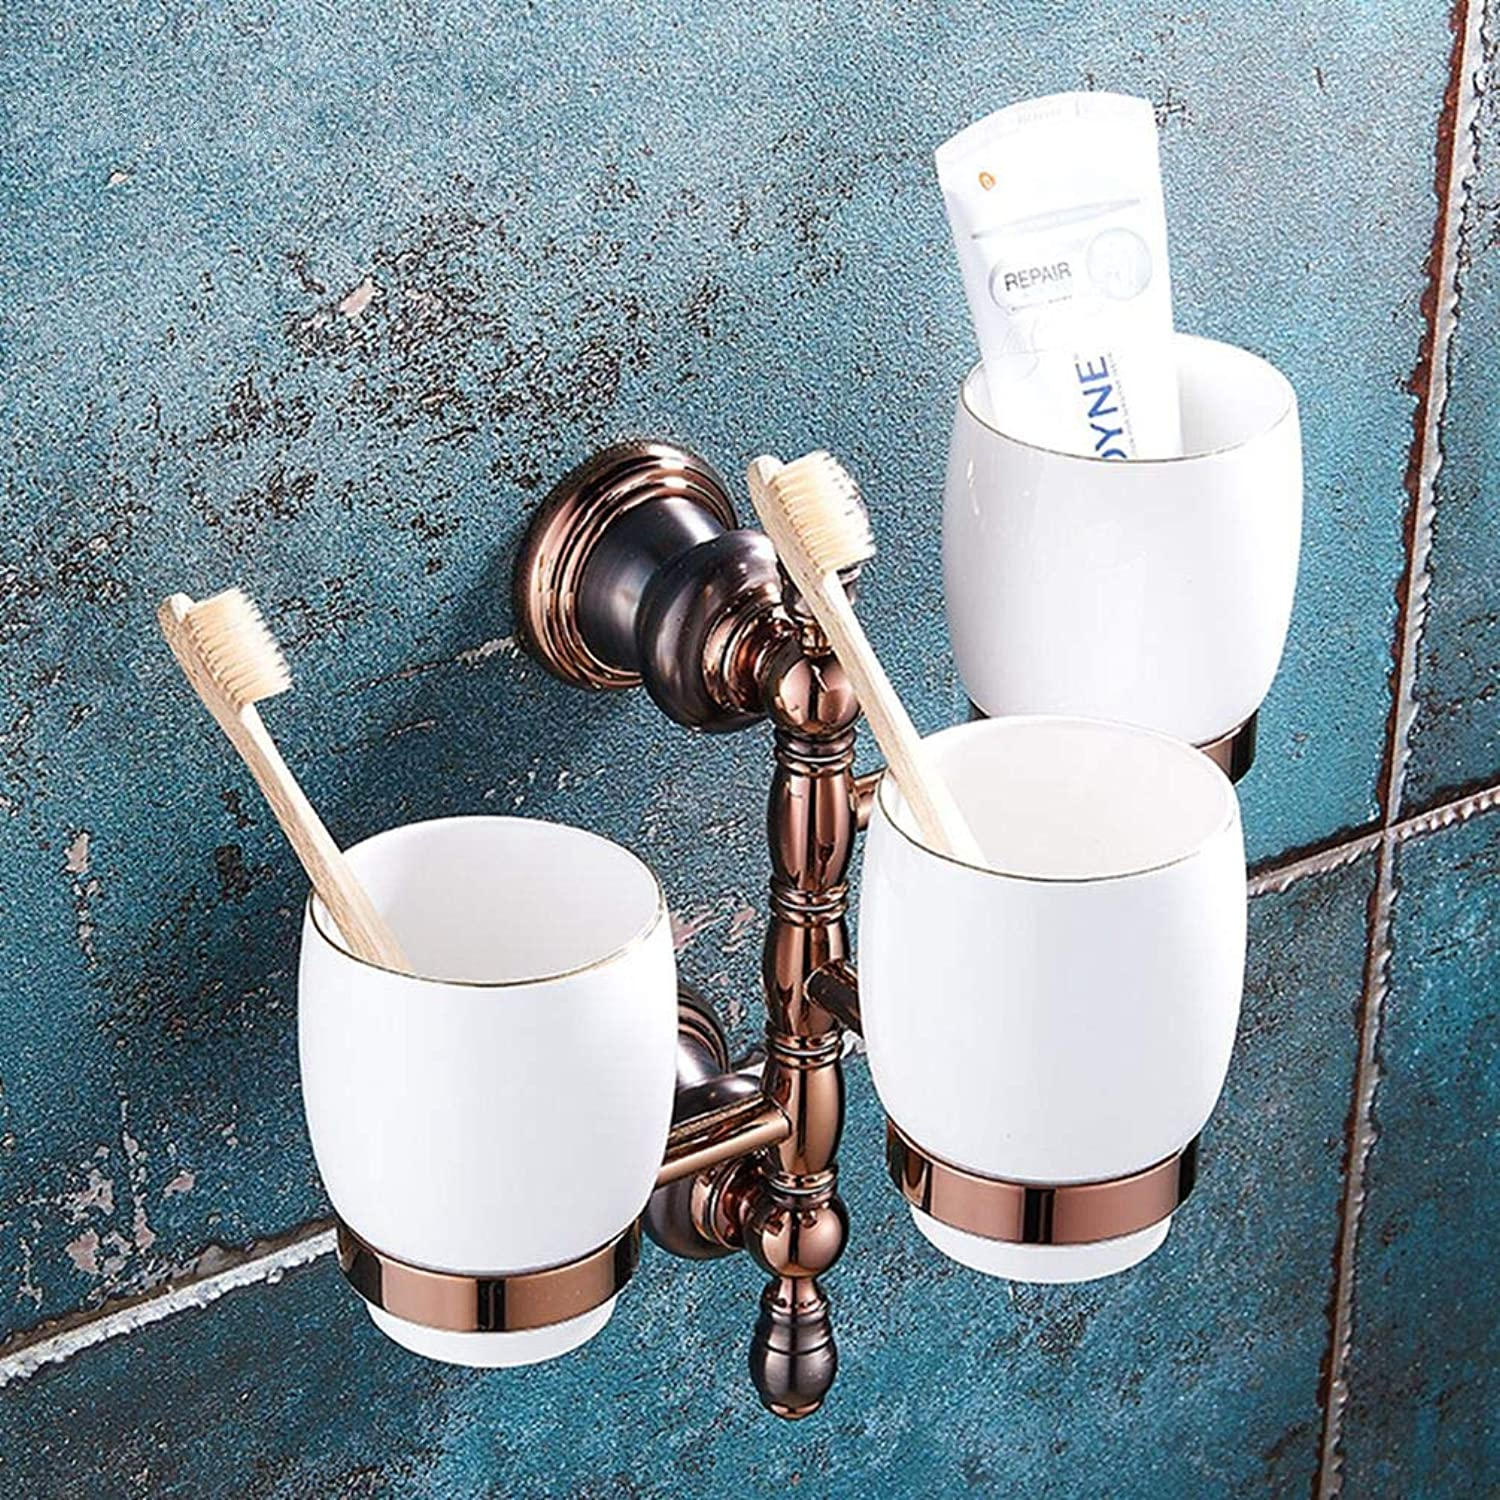 LUDSUY Bathroom accessoriespink gold Cups Metal Pendant Bathroom Toilet Brush Cup Suit All Copper Brown Ancient Dual Cup Holders, C